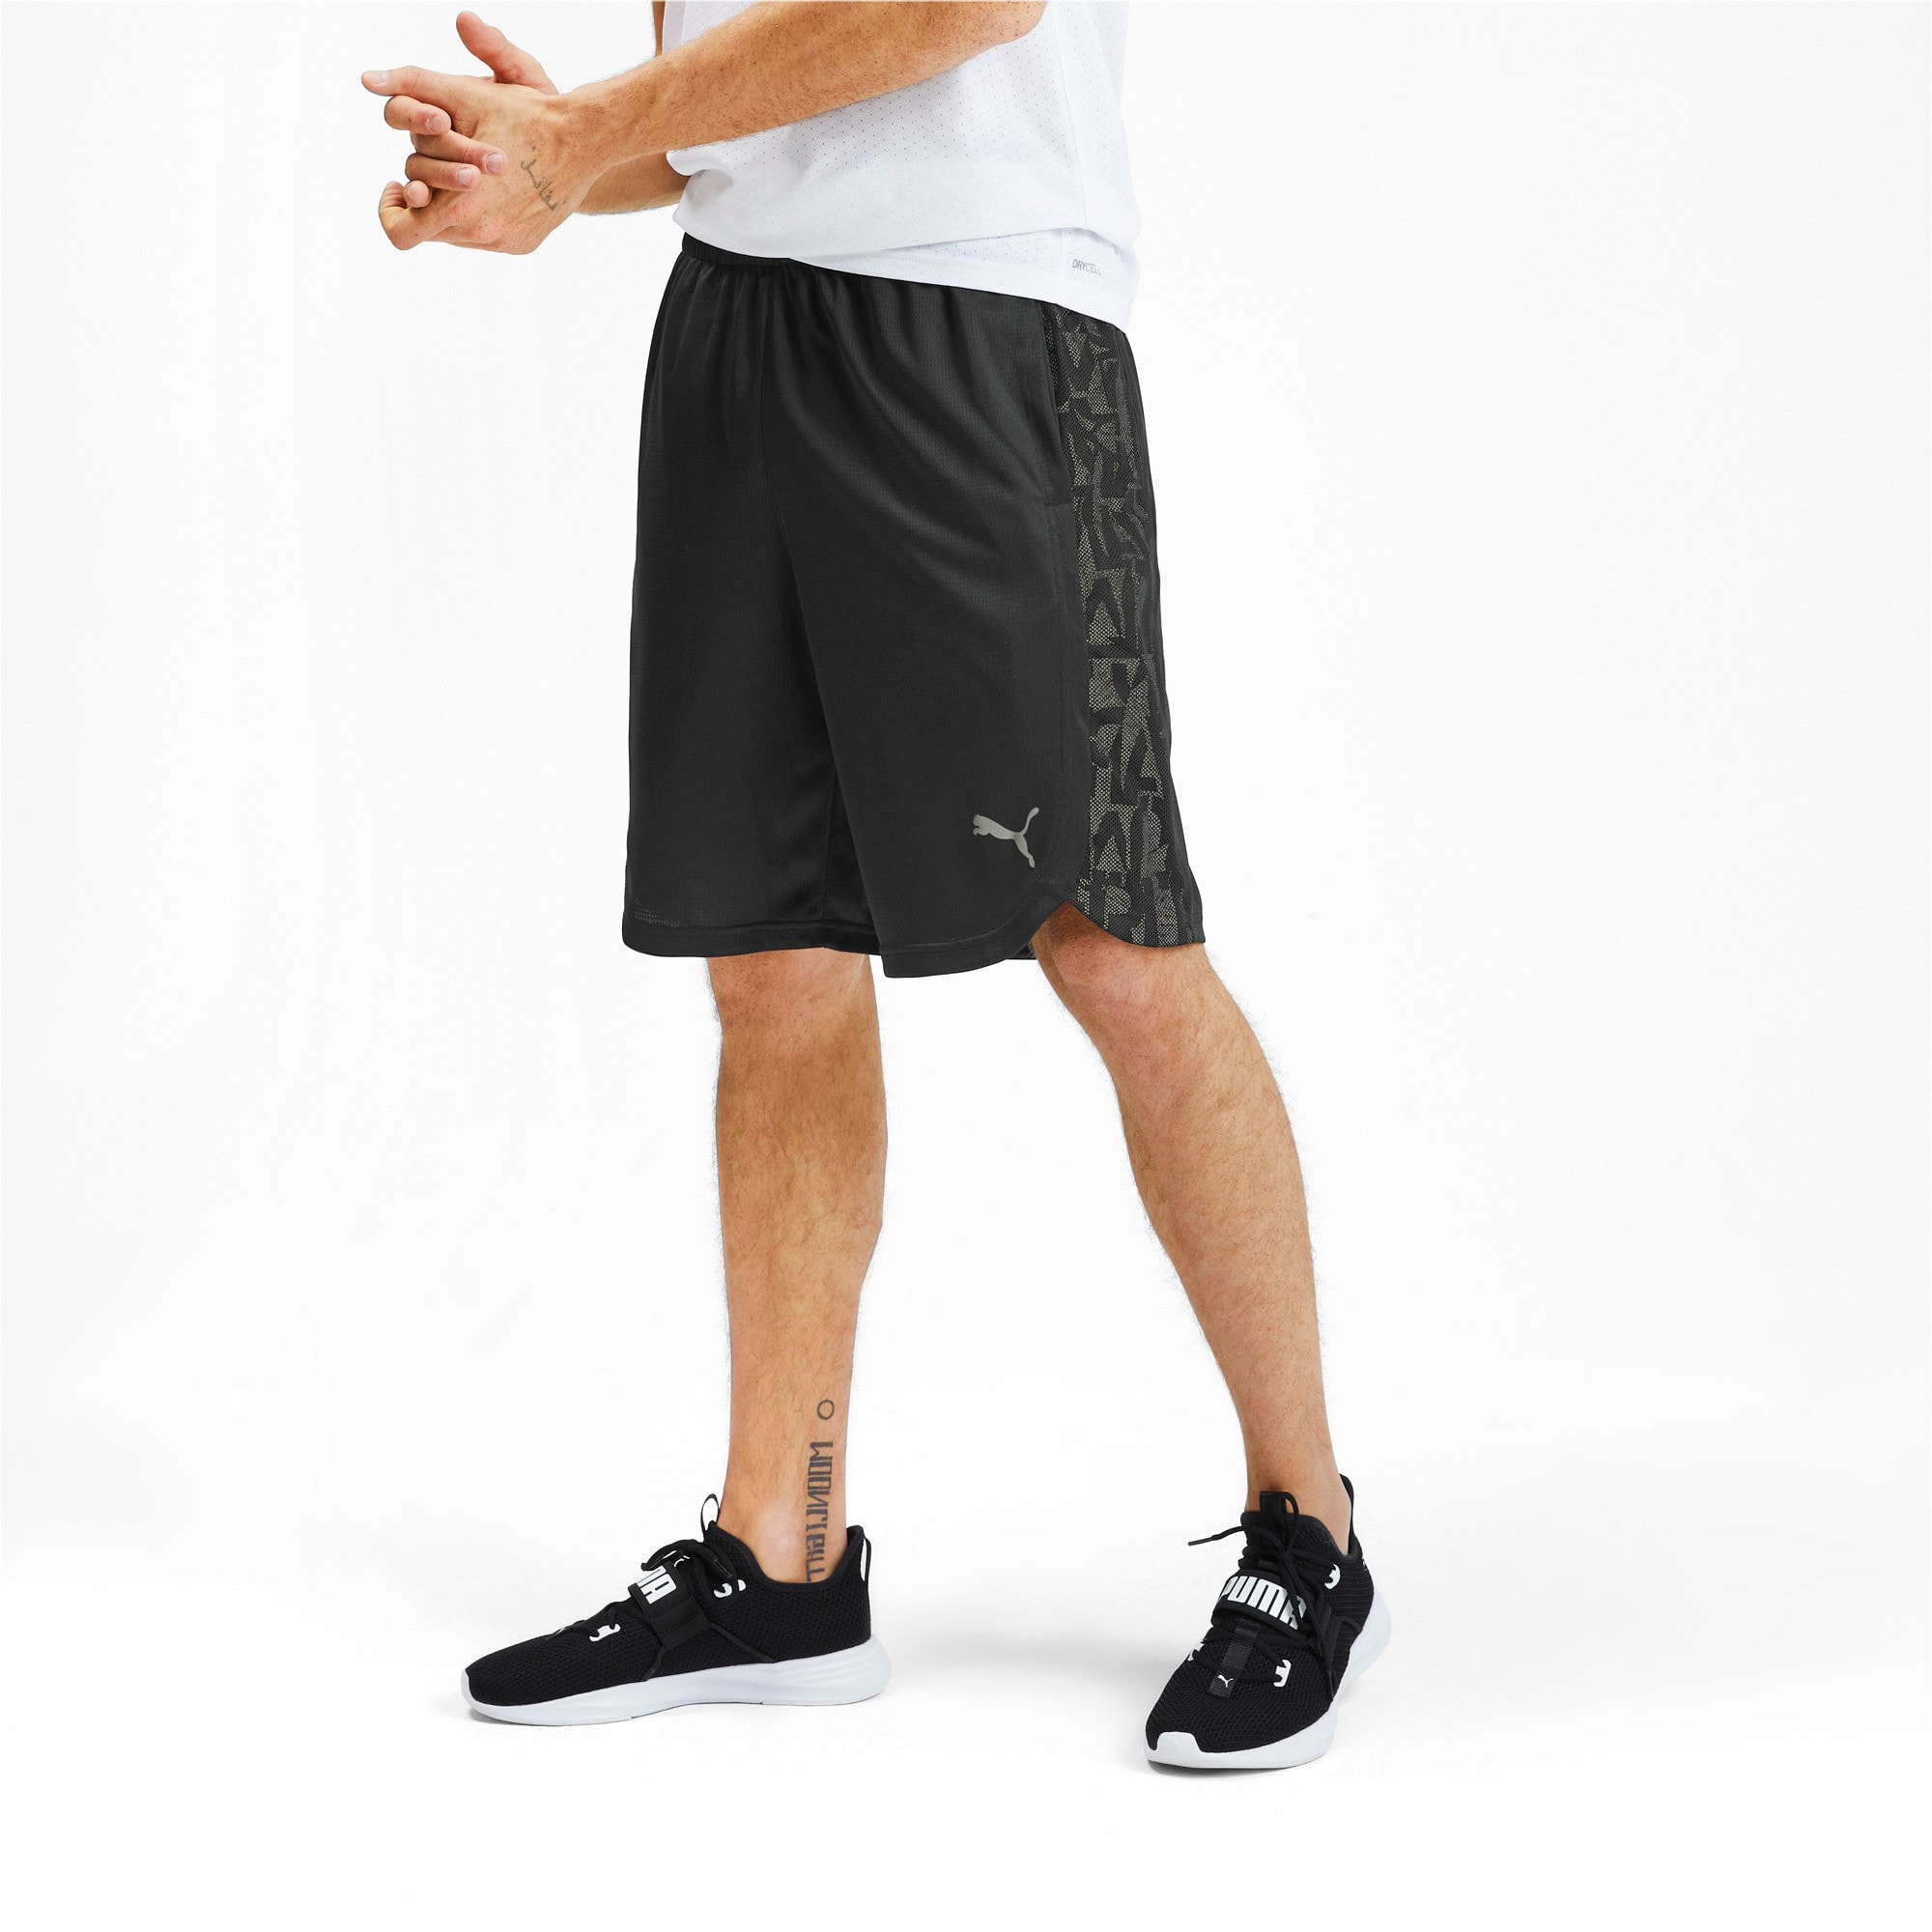 Thumbnail 1 of Power Vent Men's Training Shorts, Puma Black-Puma White, medium-IND